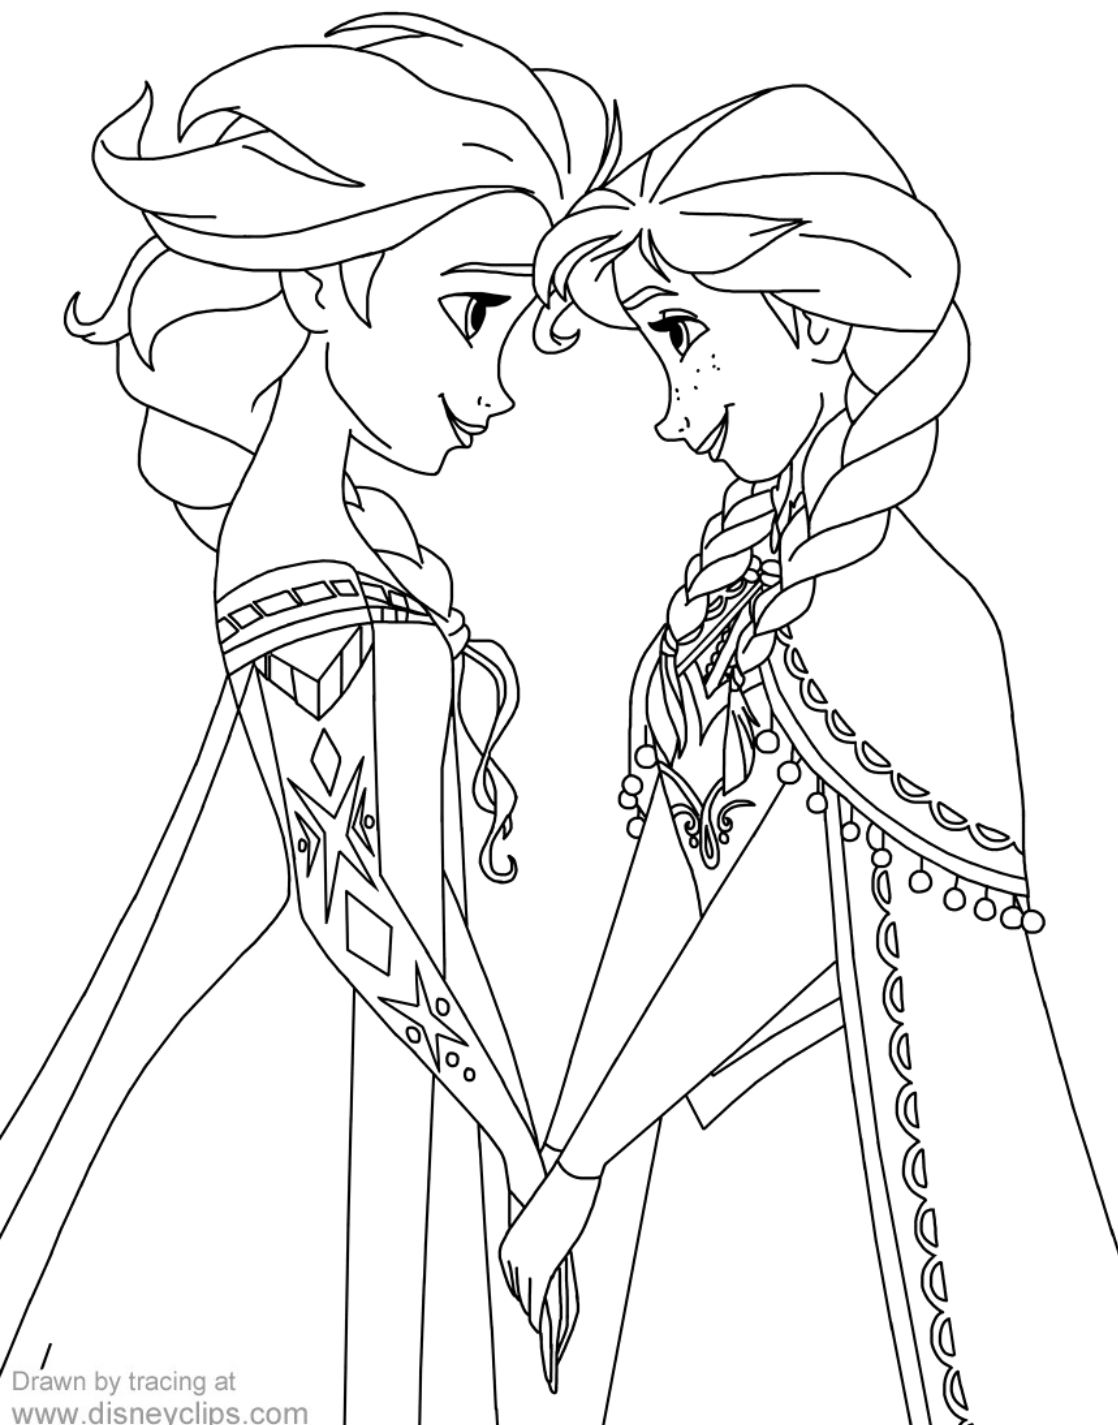 anna and elsa printables download 35 elsa and anna pictures to print and color anna printables elsa and